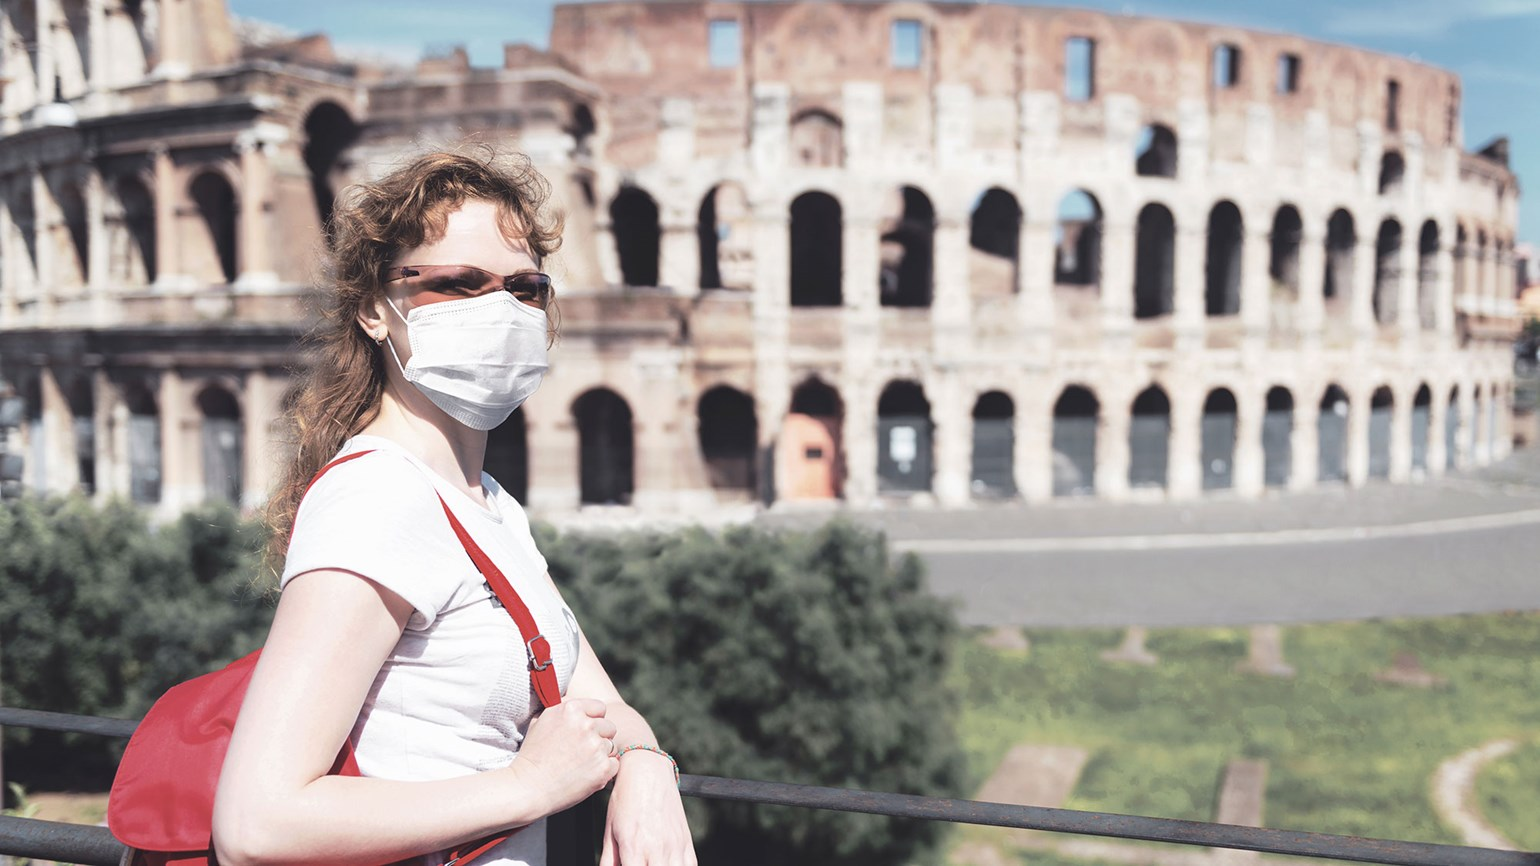 Colosseum in Rome, masked woman